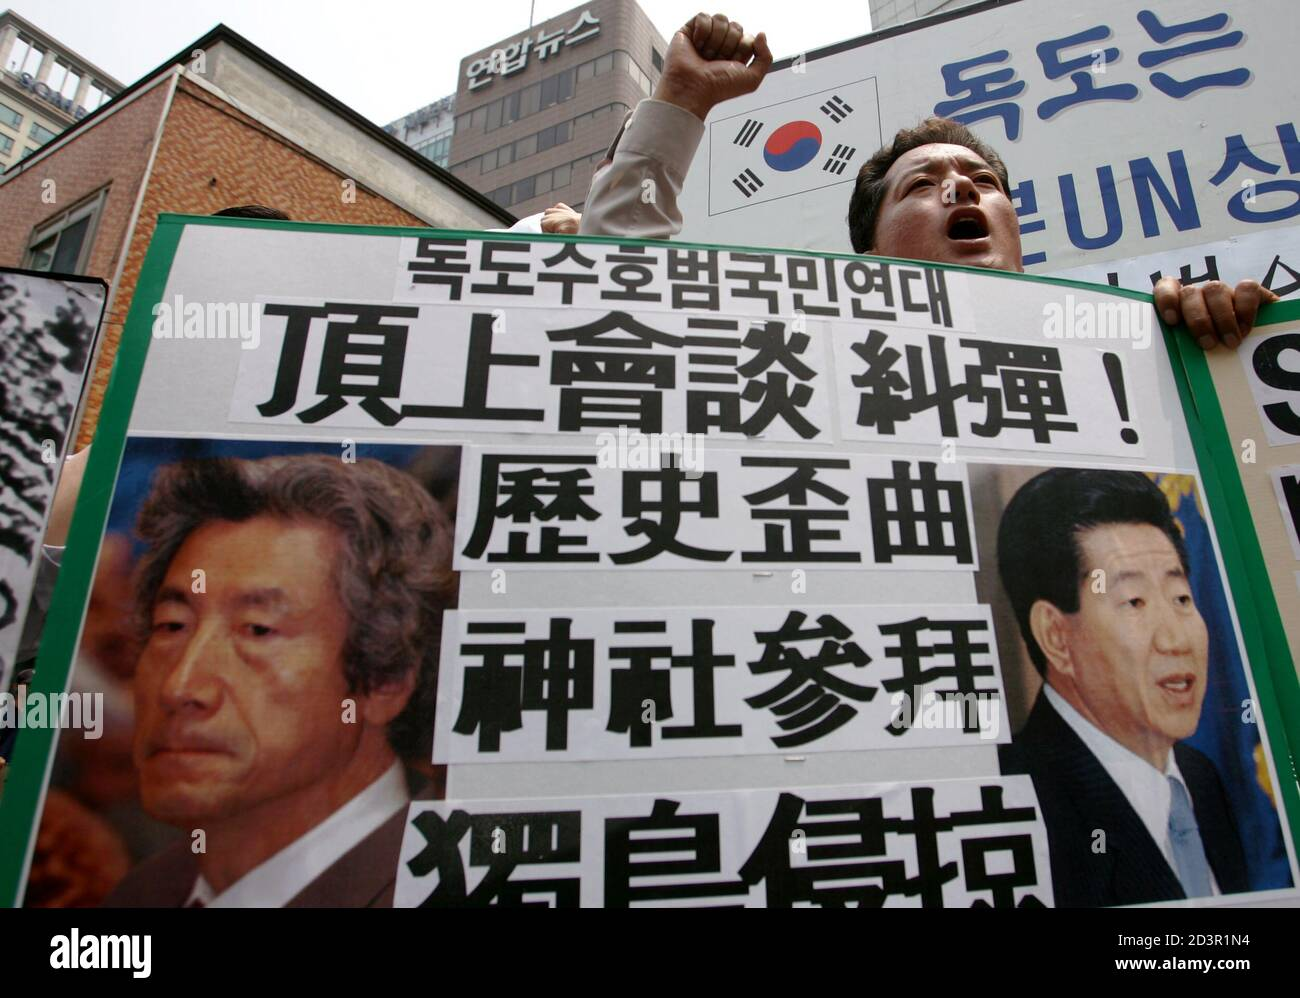 "A South Korean protester shouts slogans at an anti-Japan rally in Seoul June 21, 2005. Koizumi left South Korea on Tuesday with little to show from talks with South Korean President Roh Moo-hyun that newspapers in both countries criticised as disappointing and one called ""gloomy"". The slogan reads: ""Opposed to the summit, distortion of history in school textbooks and visits to the shrine"". REUTERS/Kim Kyung-Hoon  KKH/CCK Stock Photo"